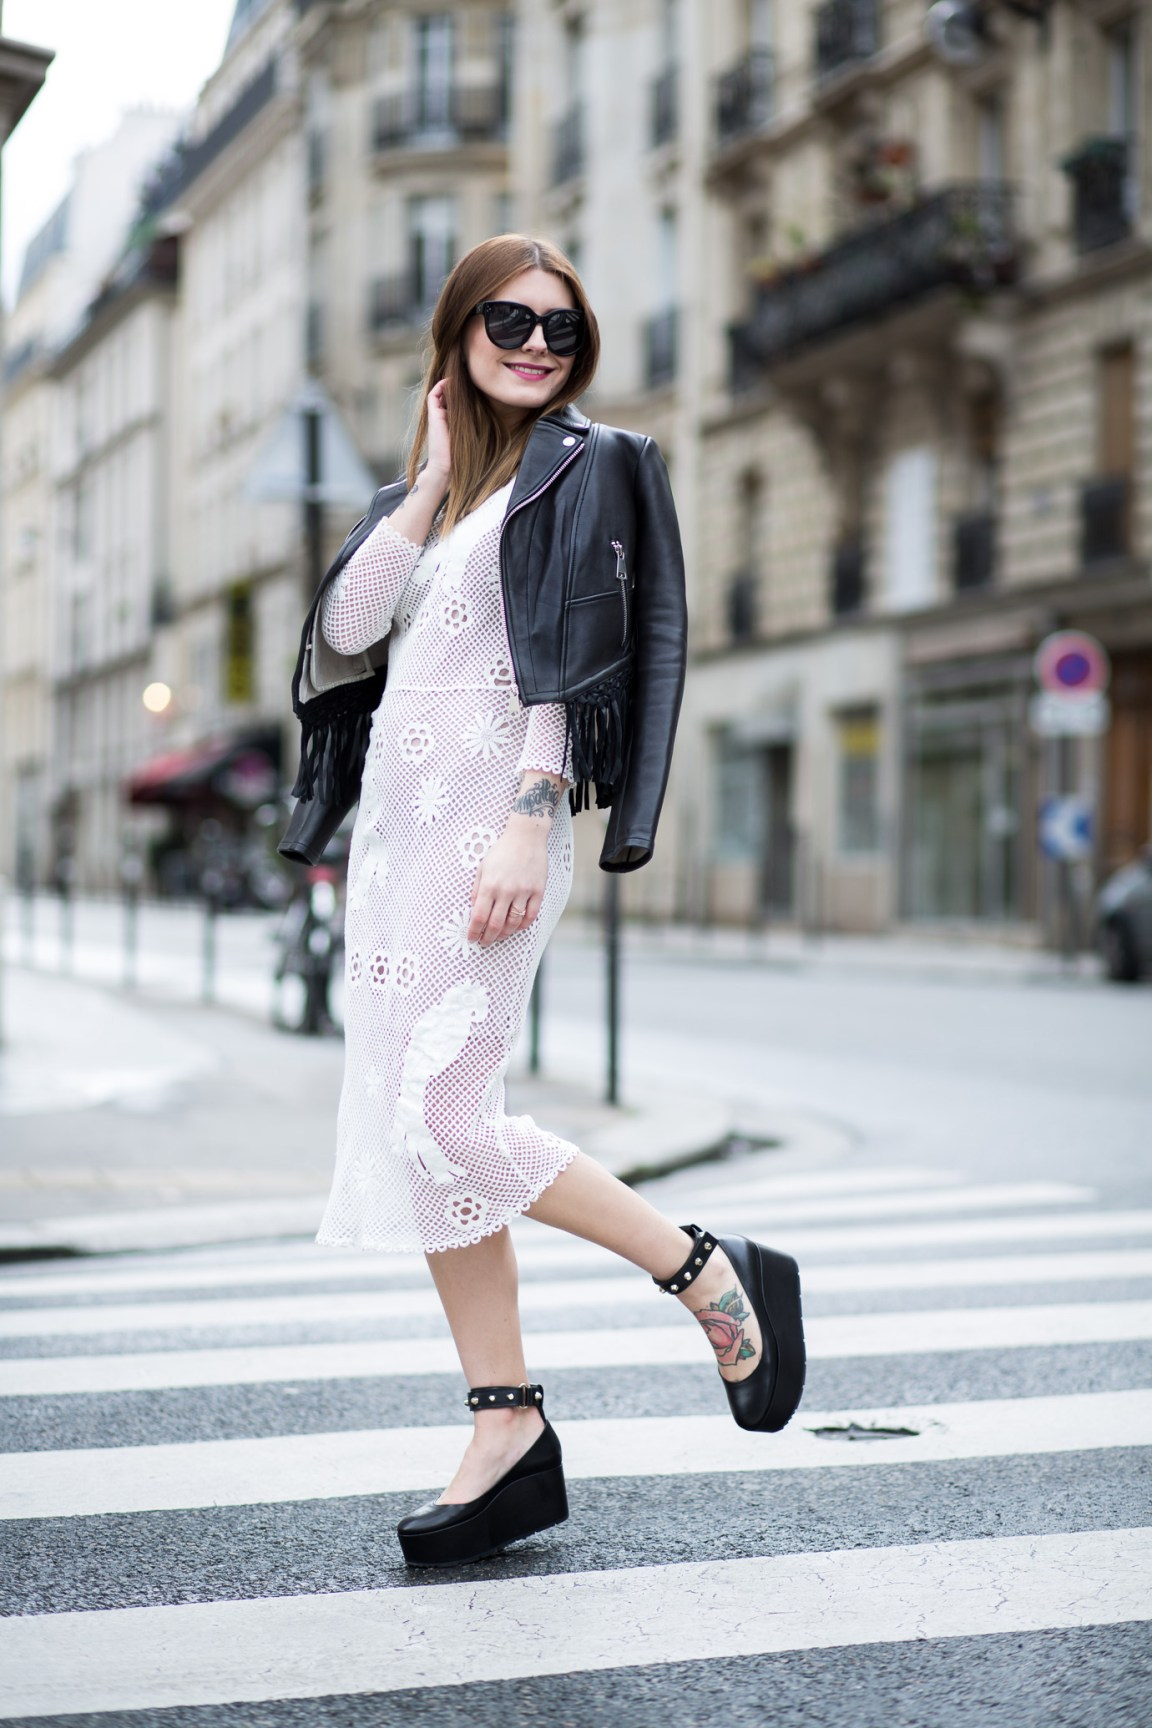 Paris_Lace_and_Leather_1